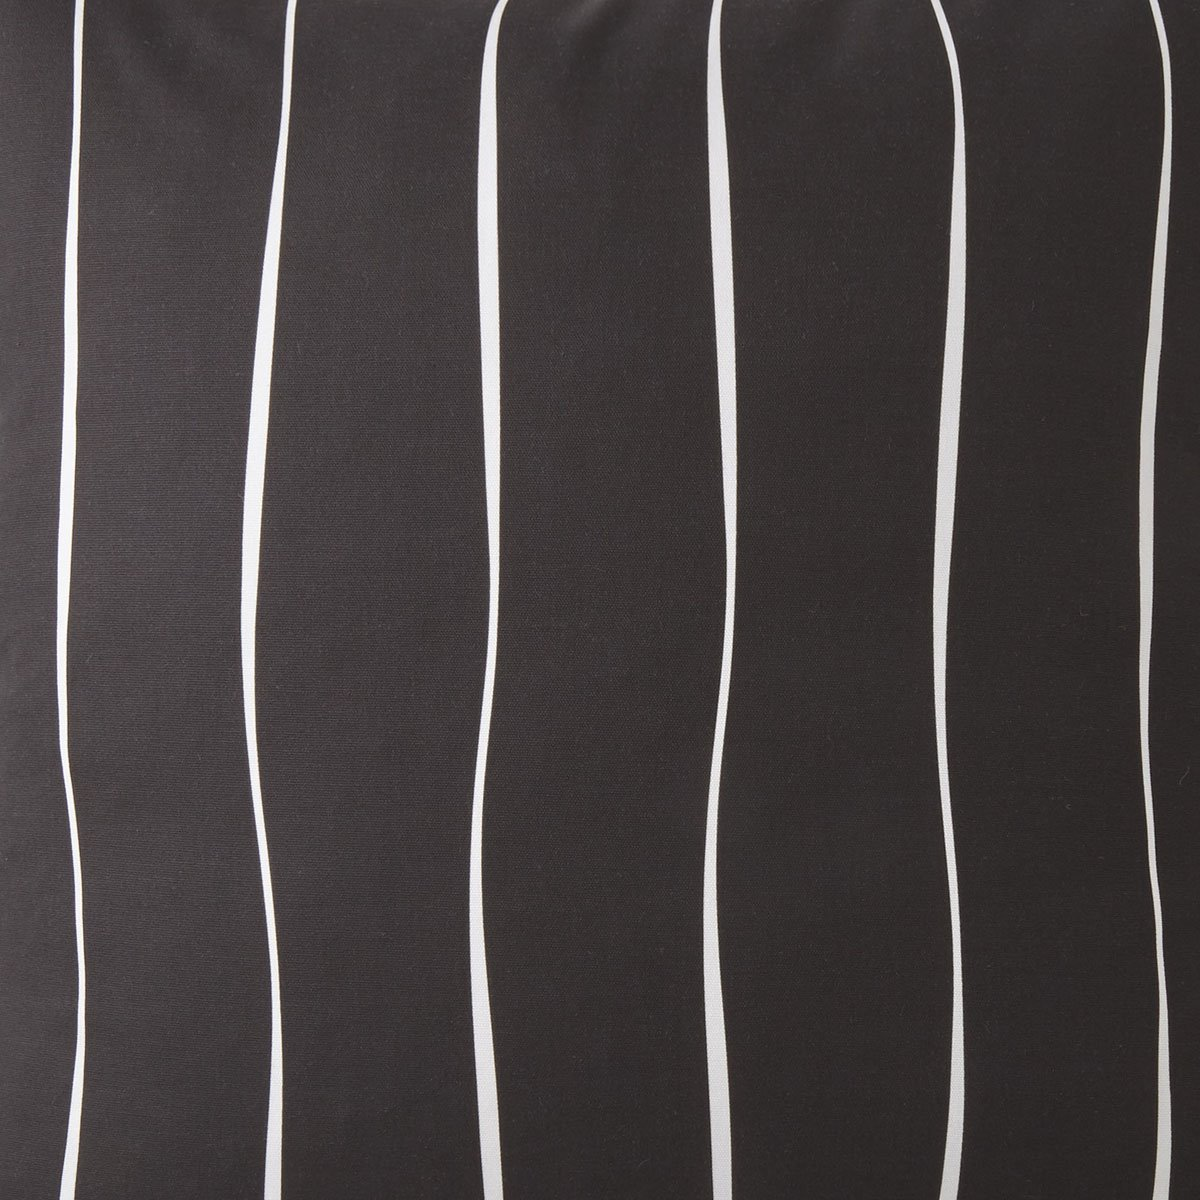 Toile Back In Black Fabric Per Yard - Black & White Stripe